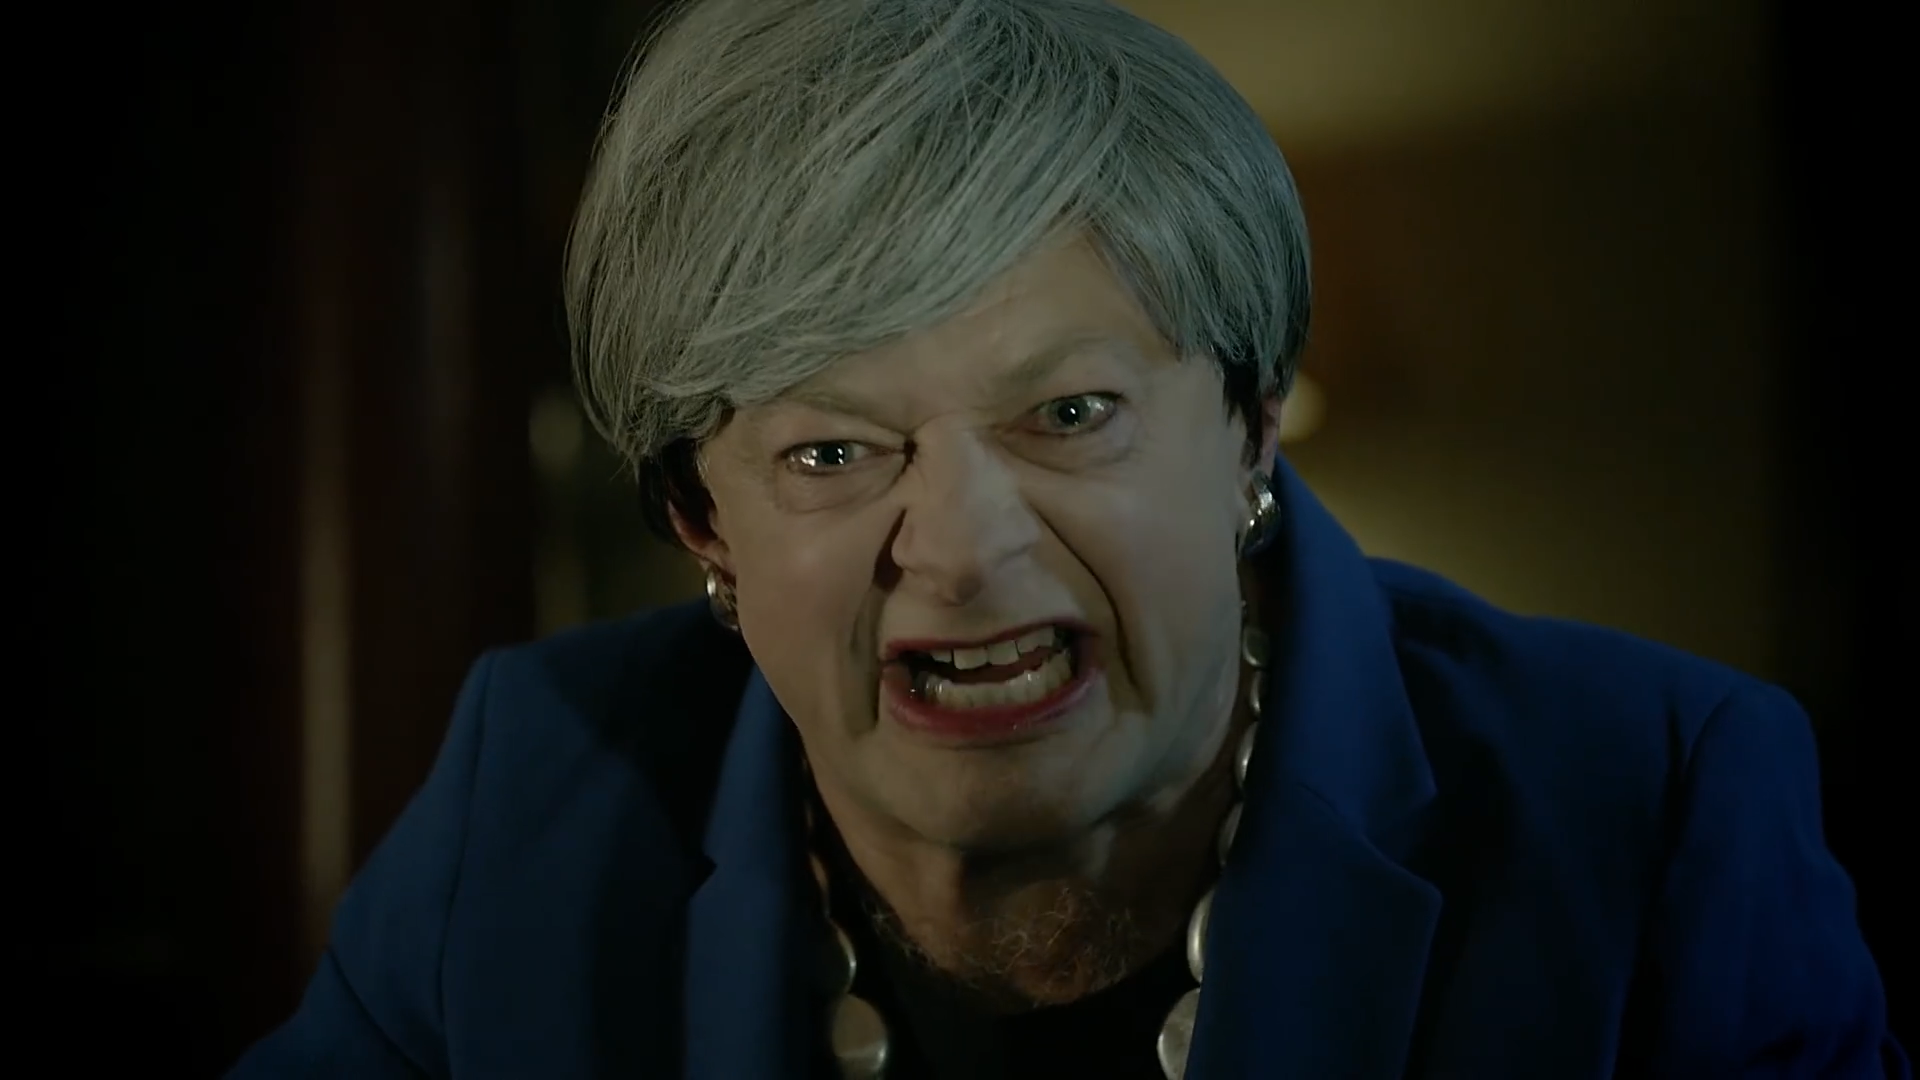 Andy Serkis resurrects Gollum to mock Brexit